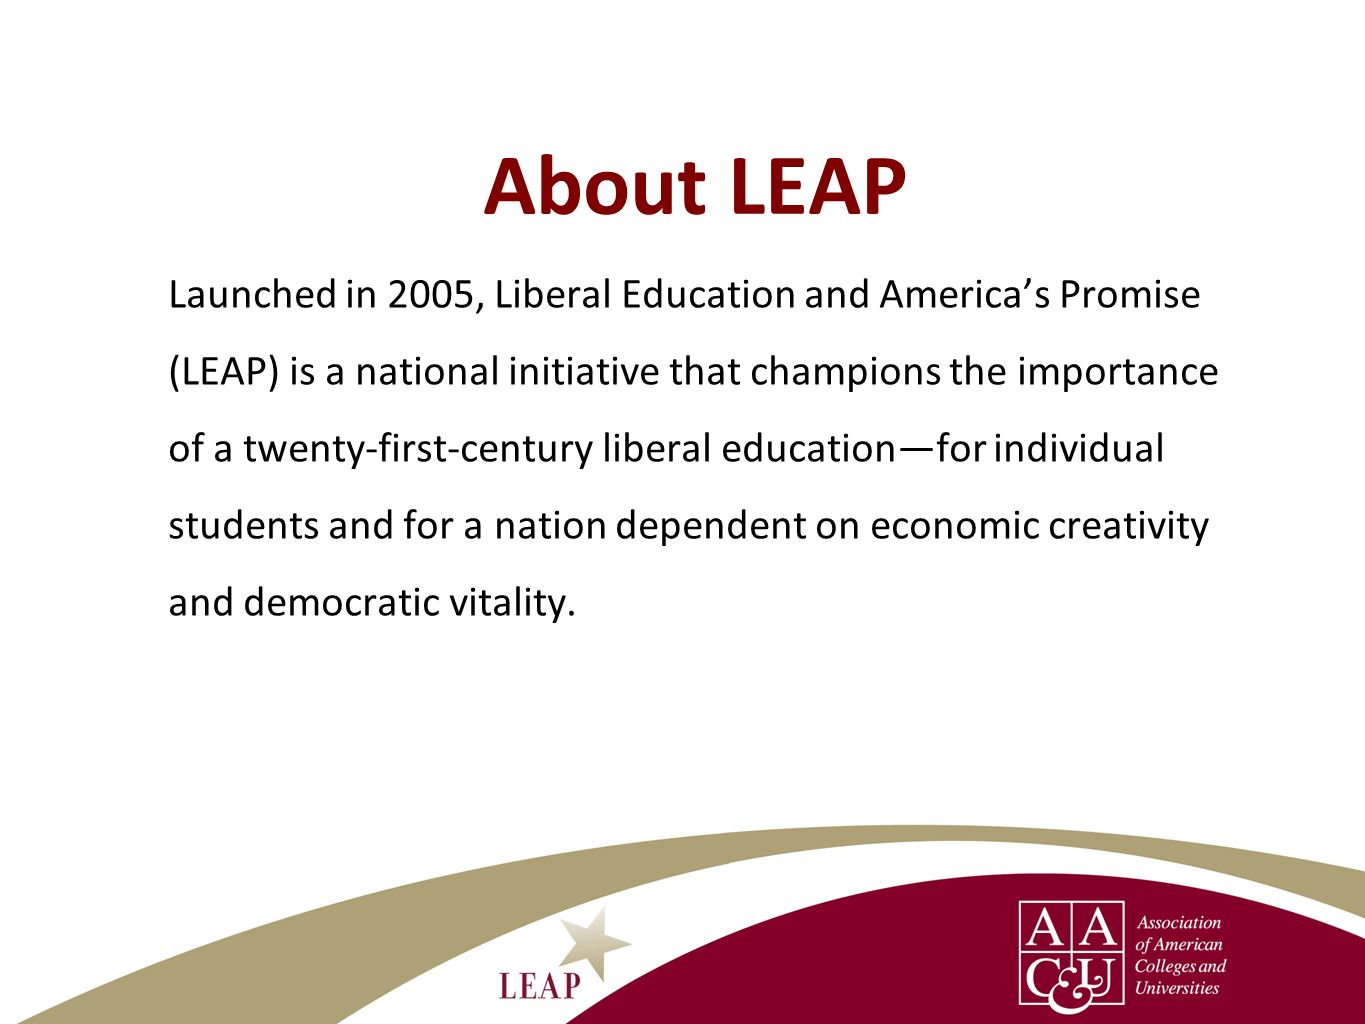 Clarifying Terminology AAC&U traditionally –and particularly through LEAPhas advocated for all students to receive a powerful and horizon-expanding liberal education Liberal Education: An approach to college learning that empowers individuals and prepares them to deal with complexity, diversity and change.